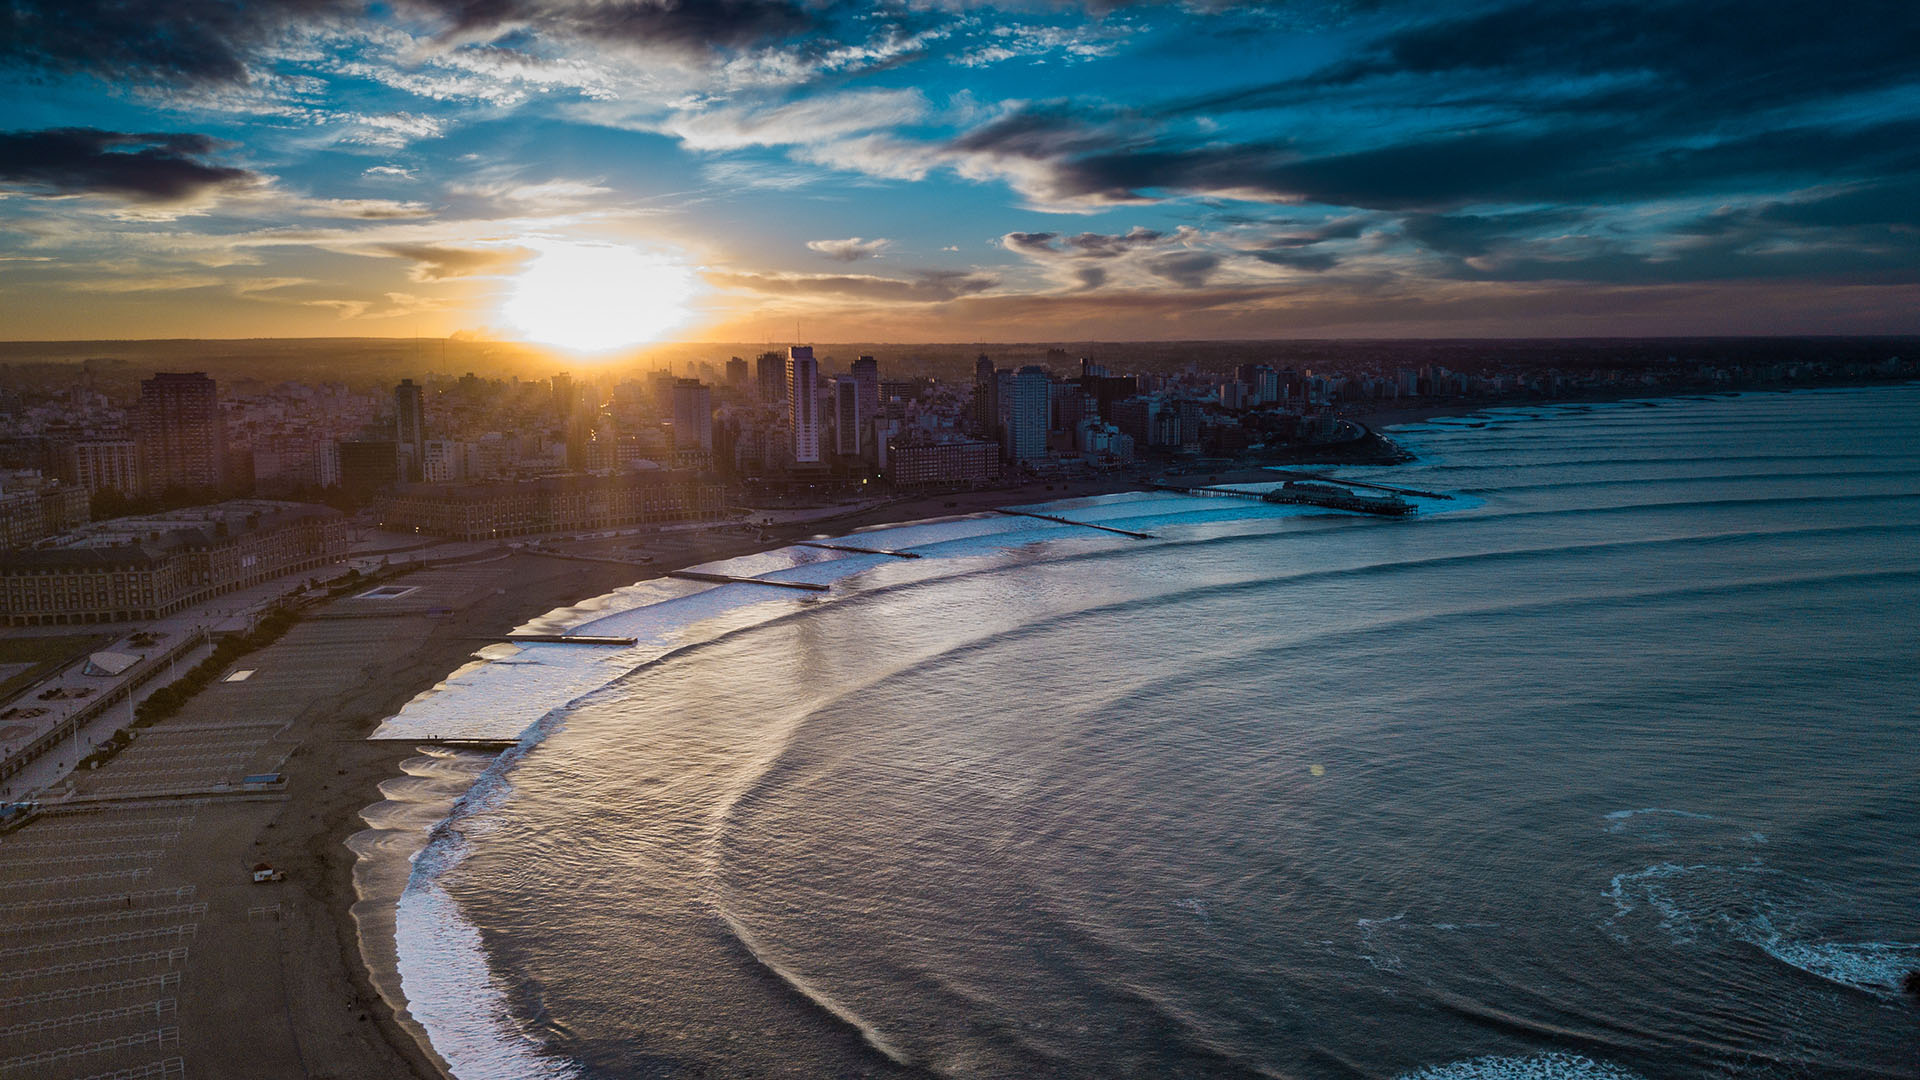 The sun setting over one of the fantastic beaches (Image credit - Infobae)